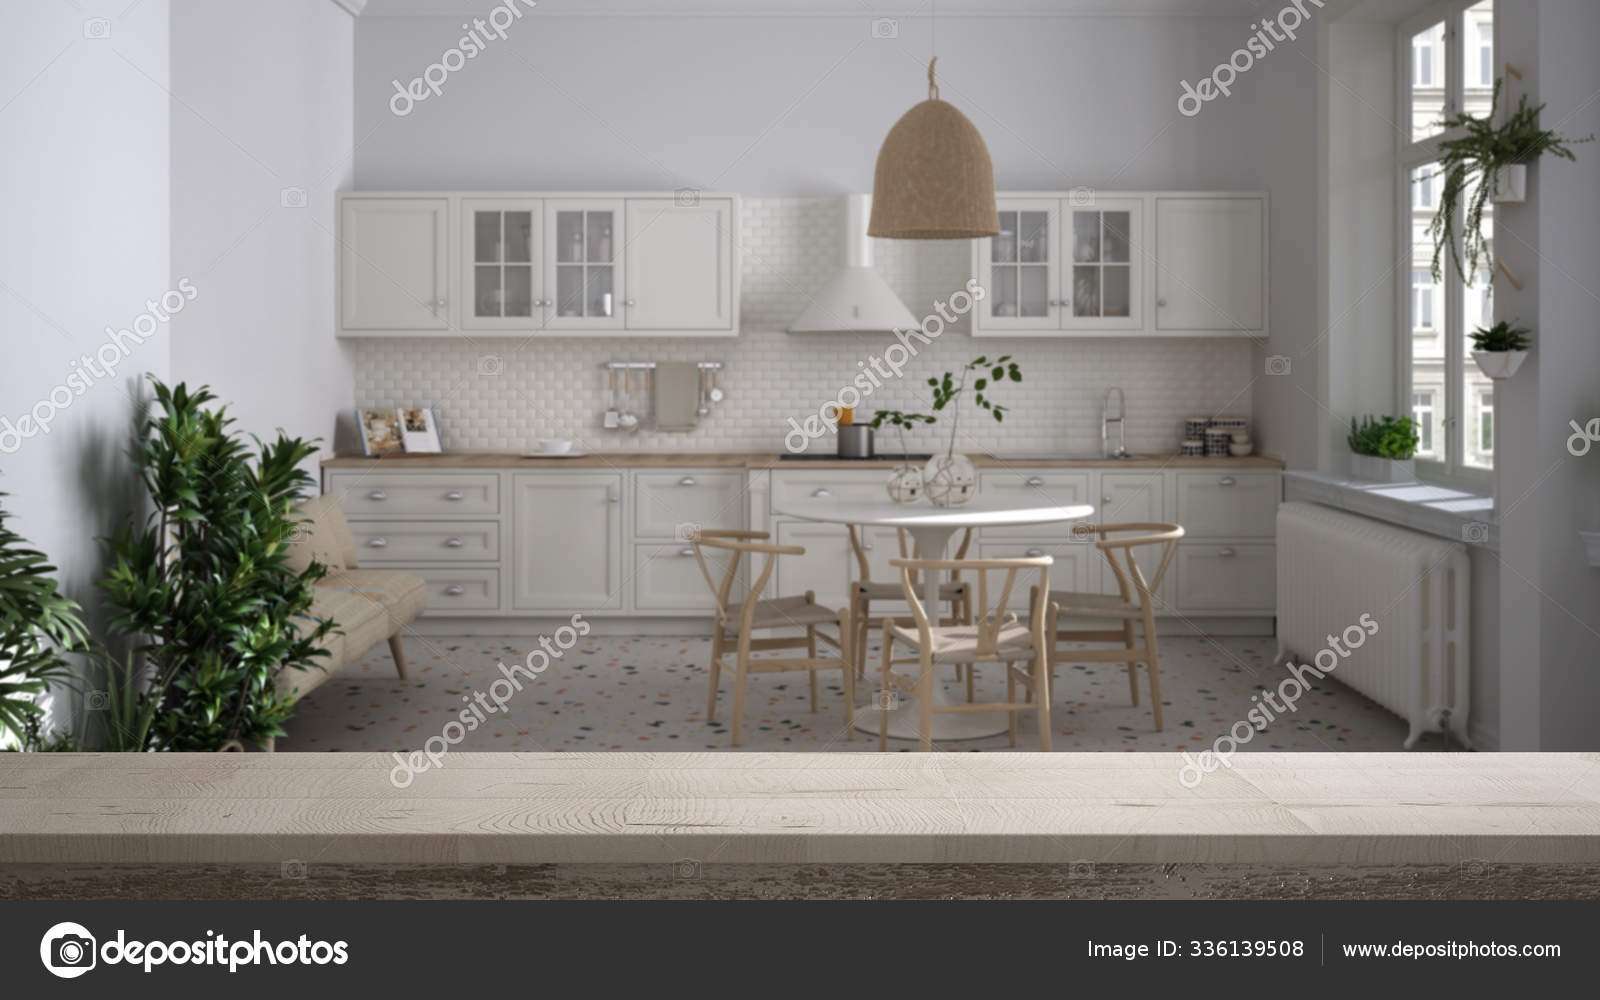 Wooden Vintage Table Top Or Shelf Closeup Zen Mood Over Vintage Retro Kitchen With Dining Table And Wooden Chairs Plants Panoramic Windows White Architecture Interior Design Stock Photo C Archiviz 336139508